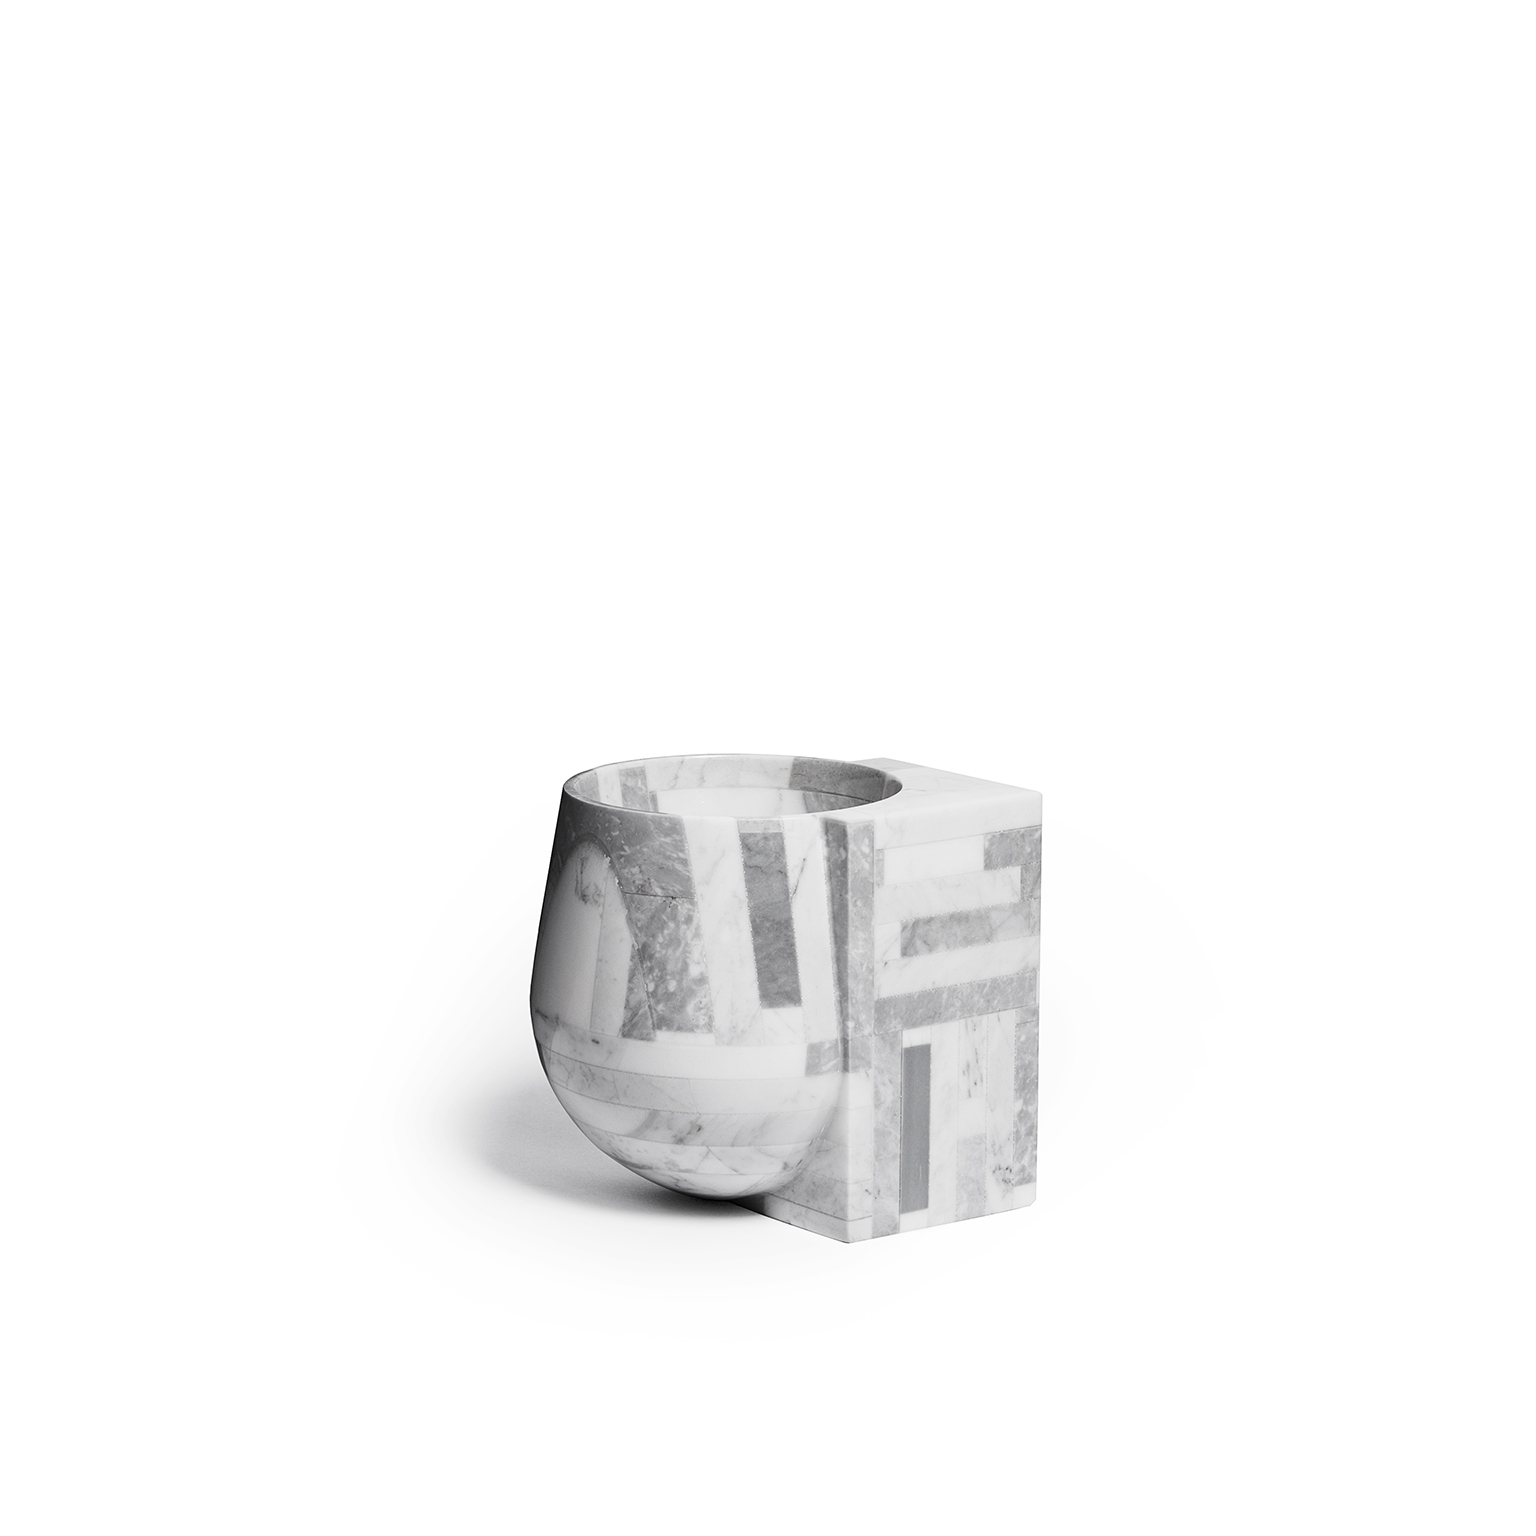 Contrasti - <p>The idea comes up from the will to emphasize the contradictions of natural resource waste. Here the marble is recovered and assembled to make a 3D module.<br /> This module has been finished to highlight the contrast of the linear and geometric side with the random texture that emerge with the cnc machine.<br /> Contrasti is made in collaboration with Stonethica, which produces stone materials as part of an eco-sustainable cycle: waste products from the processing of marble and natural stone are recycled and made into Stonethica slabs through the use of a non-toxic resin.</p>  | Matter of Stuff